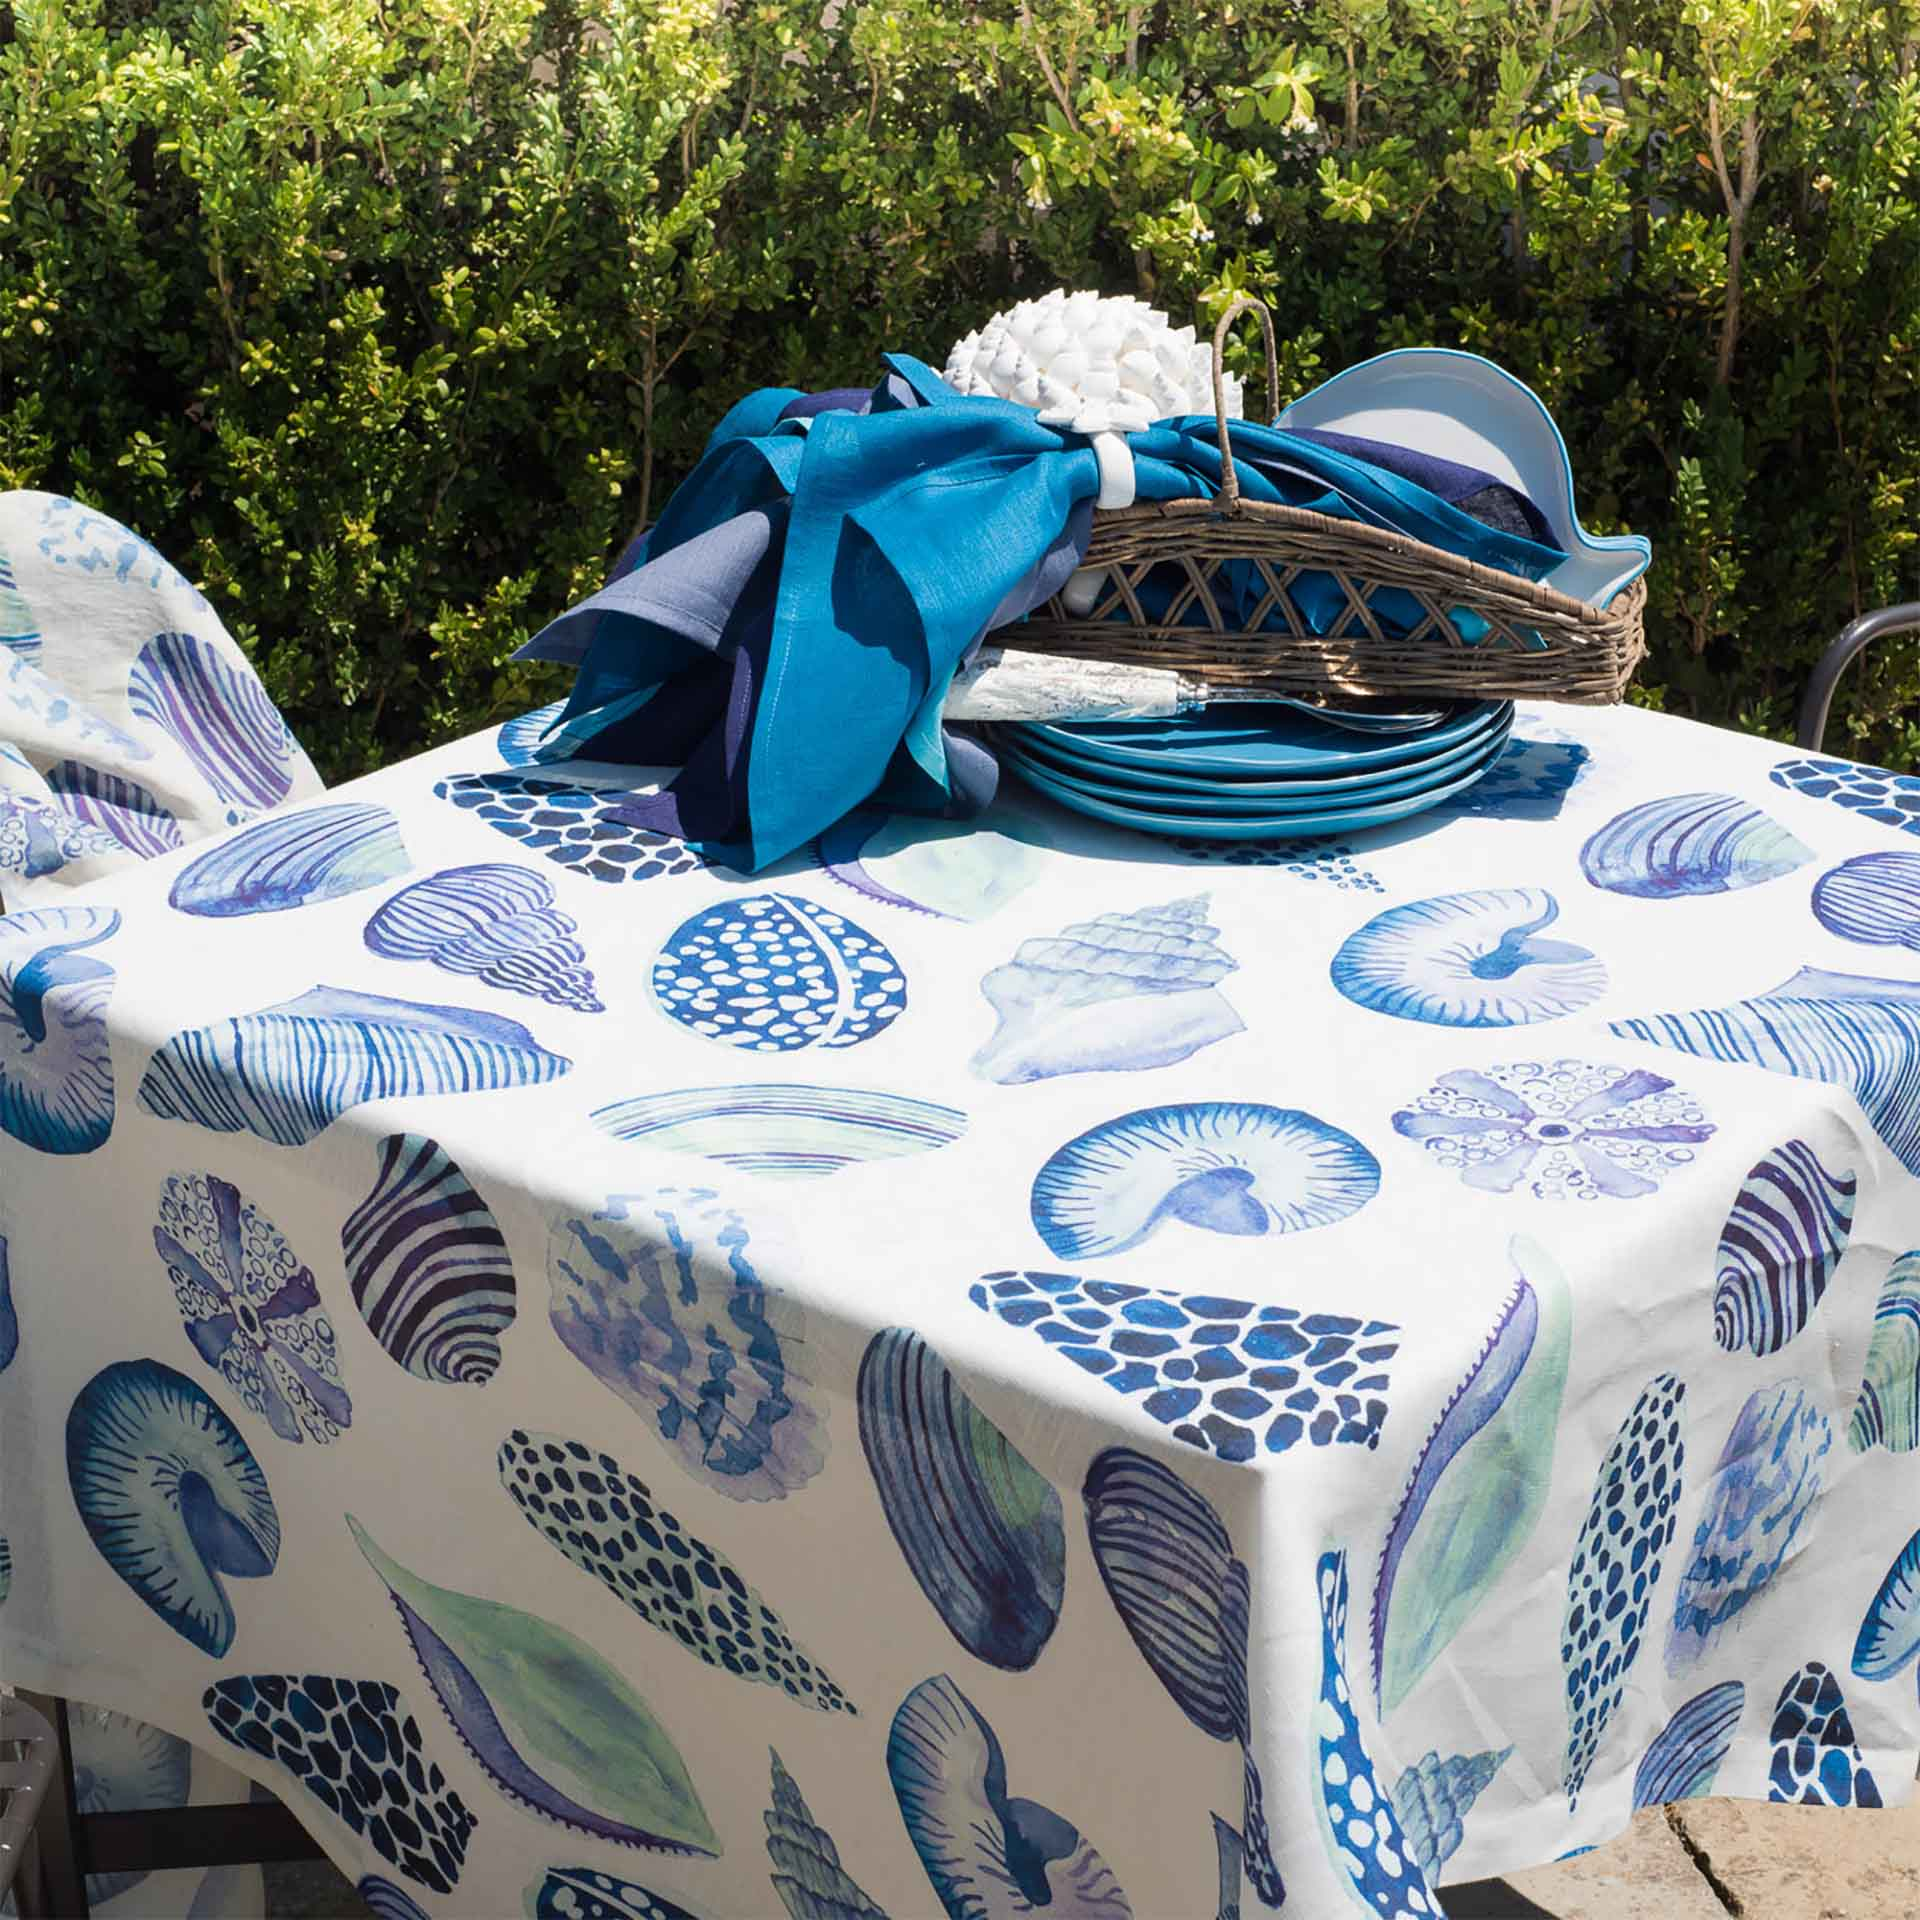 Cyprea Linen Tablecloth Sizes 170x170cm, 160x230cm, 170x270cm, 170x310cm, 175cm Round